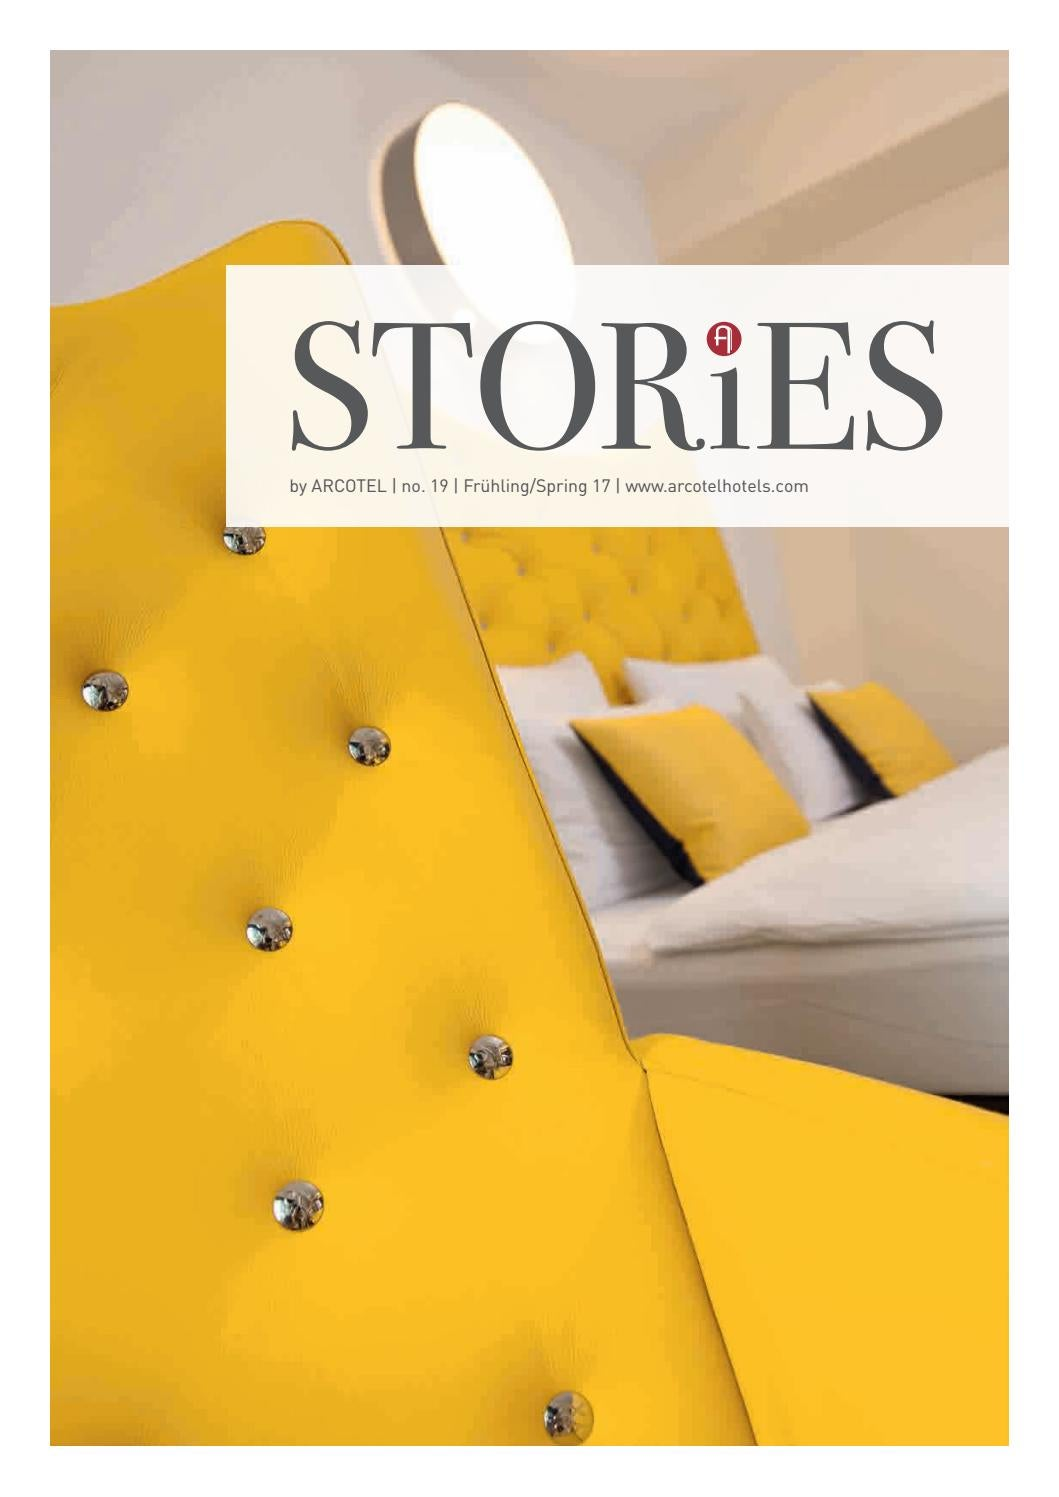 STORiES by ARCOTEL Frühling 2017 by ARCOTEL Hotels - issuu